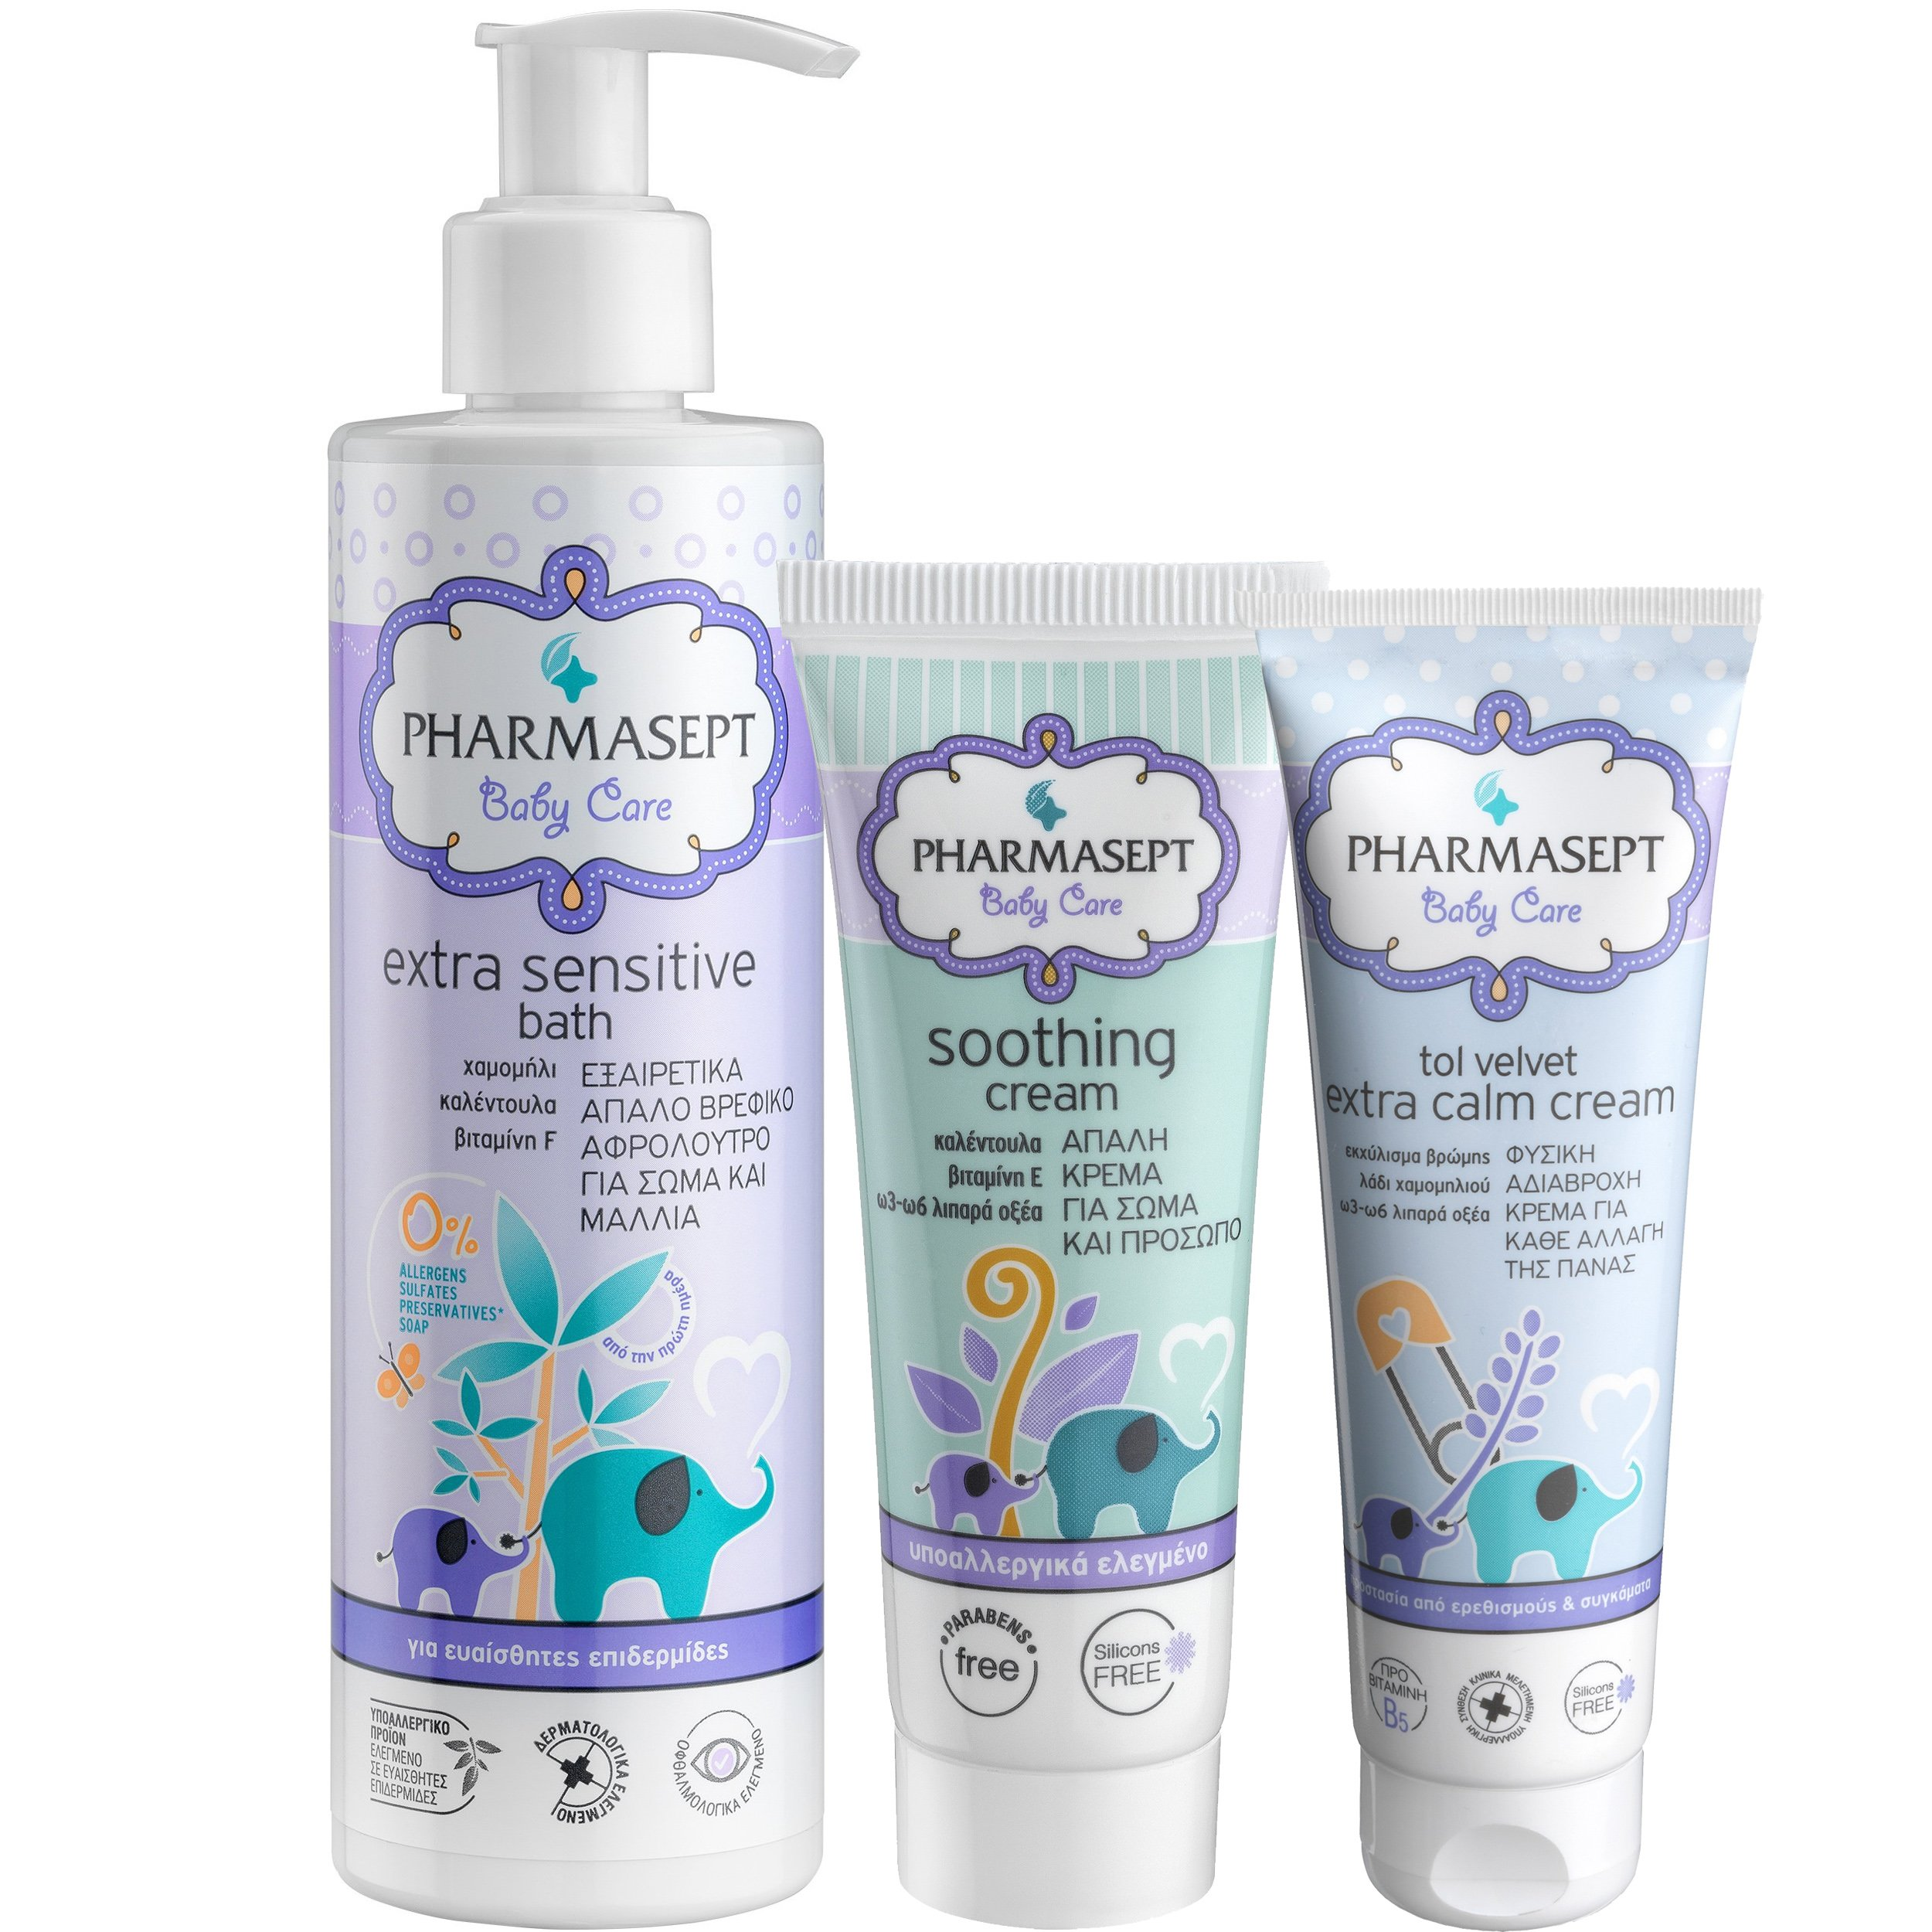 Pharmasept Πακέτο Προσφοράς Baby Extra Sensitive Bath 250ml & Tol Velvet Baby Soothing Cream 150ml & Baby Extra Calm Cream 150ml